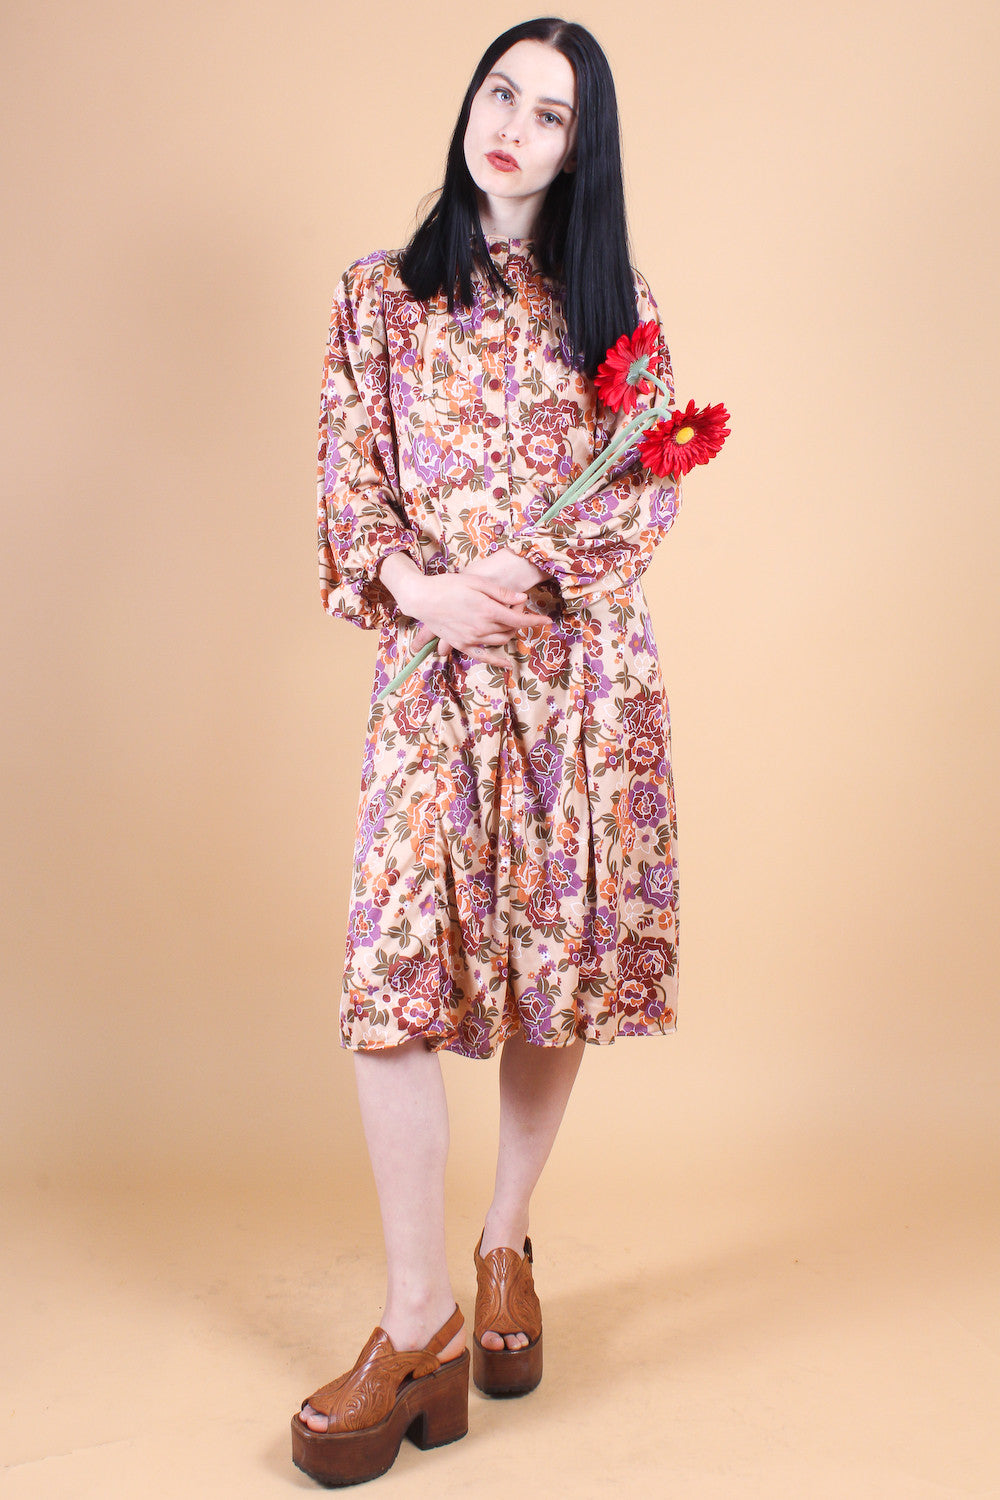 Vintage 1970's Darling Darlene Floral Dress